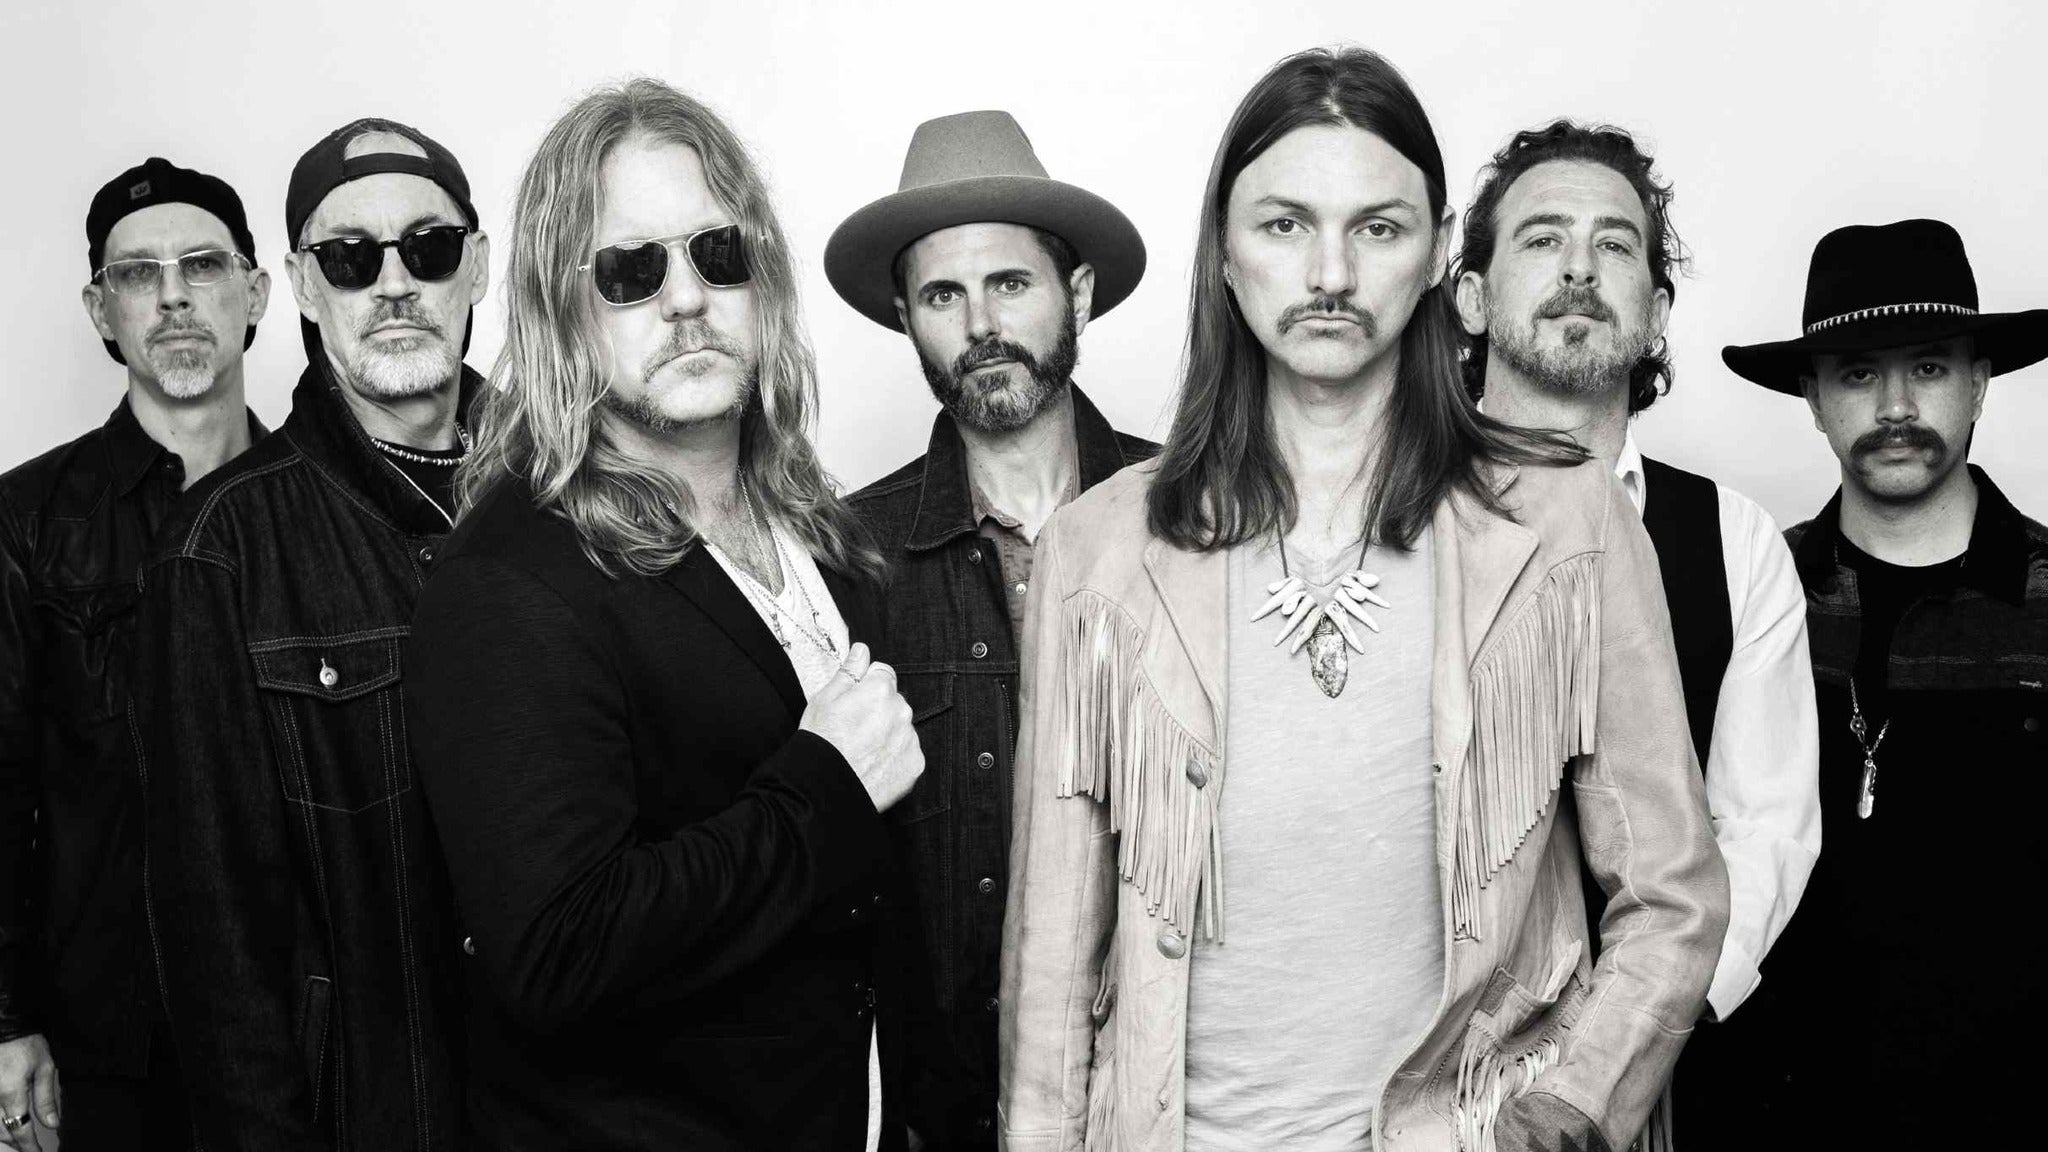 SORRY, THIS EVENT IS NO LONGER ACTIVE<br>The Allman Betts Band at Marquee Theatre - Tempe, AZ 85281